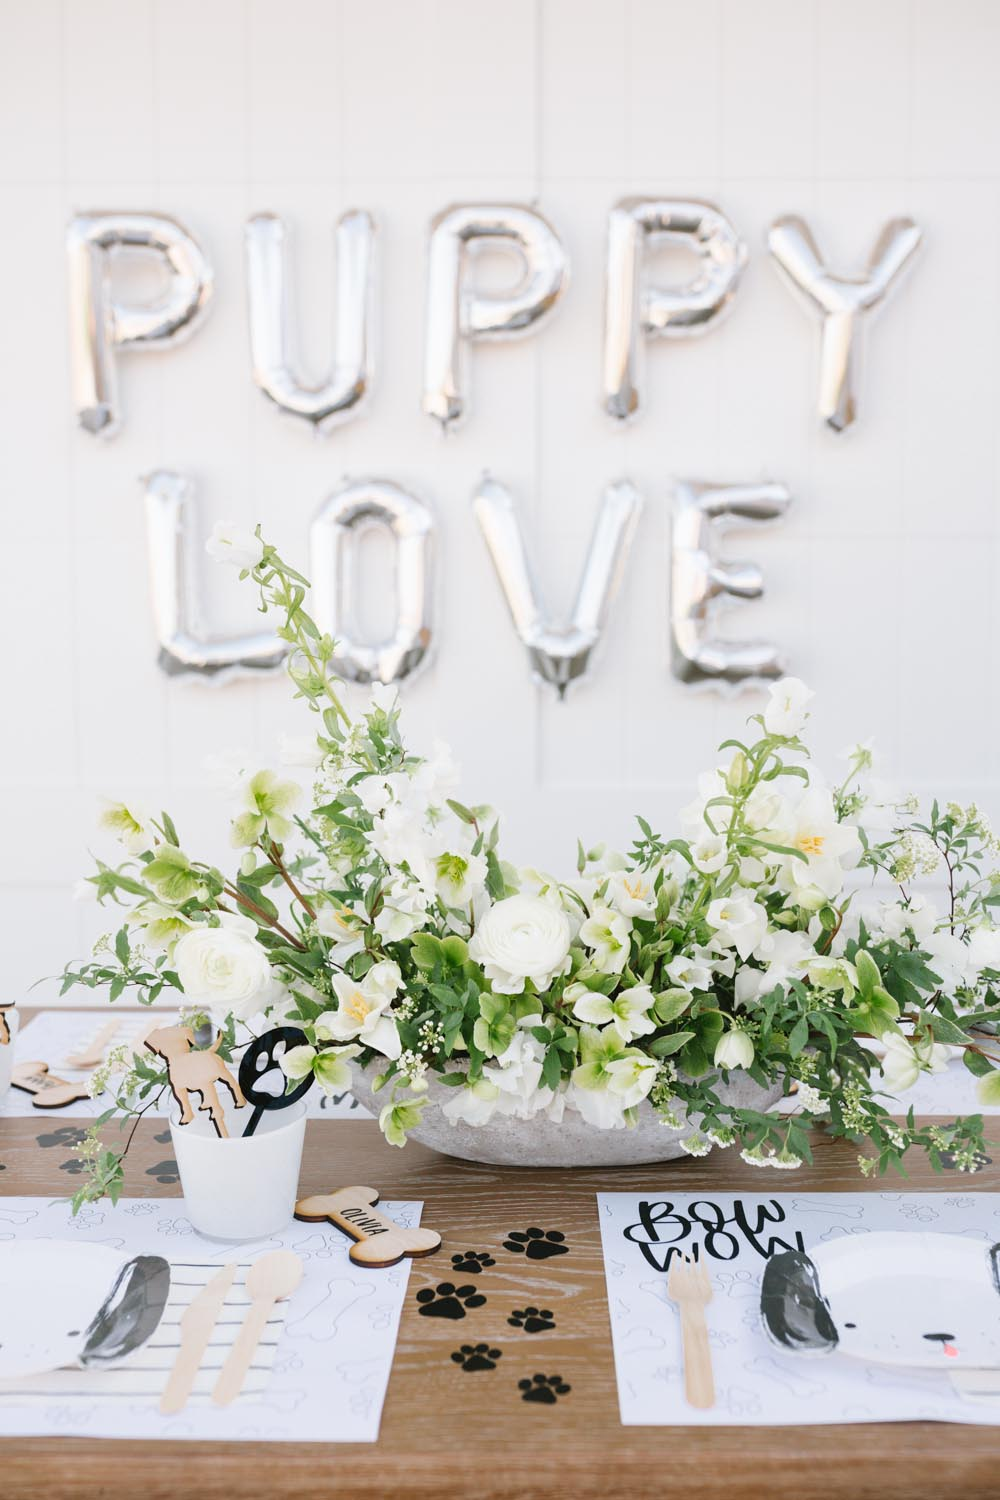 A LITTLE PUPPY LOVE FOR NATIONAL PUPPY DAY - Featured on Beijos Events Blog